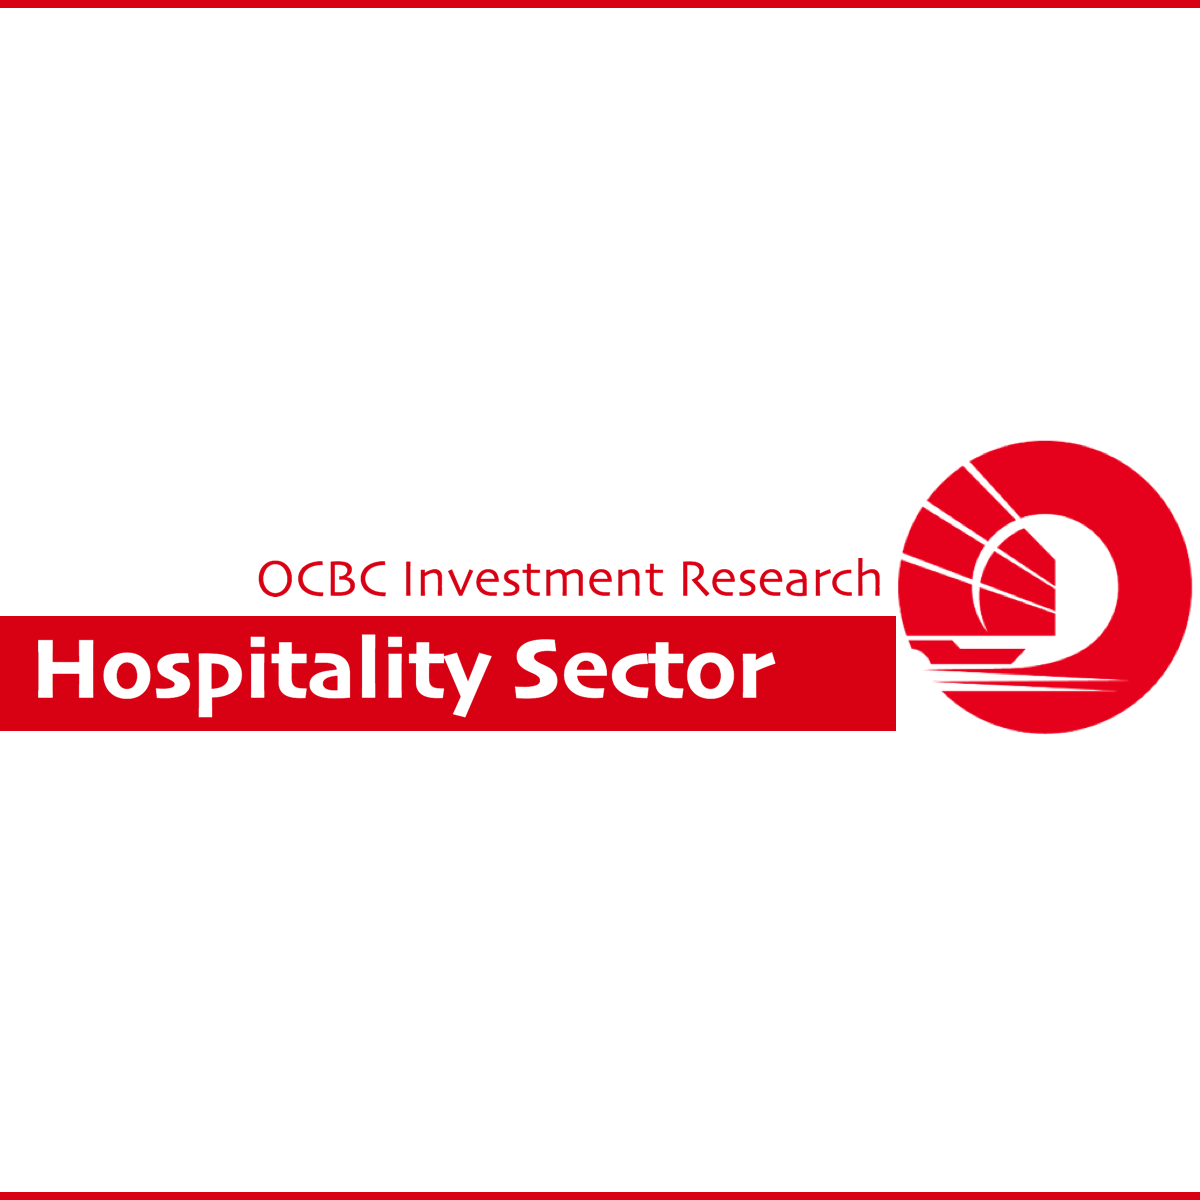 SG Hospitality - OCBC Investment 2018-03-09: Ma'am, Where Would You Like To Extend Your Stay?